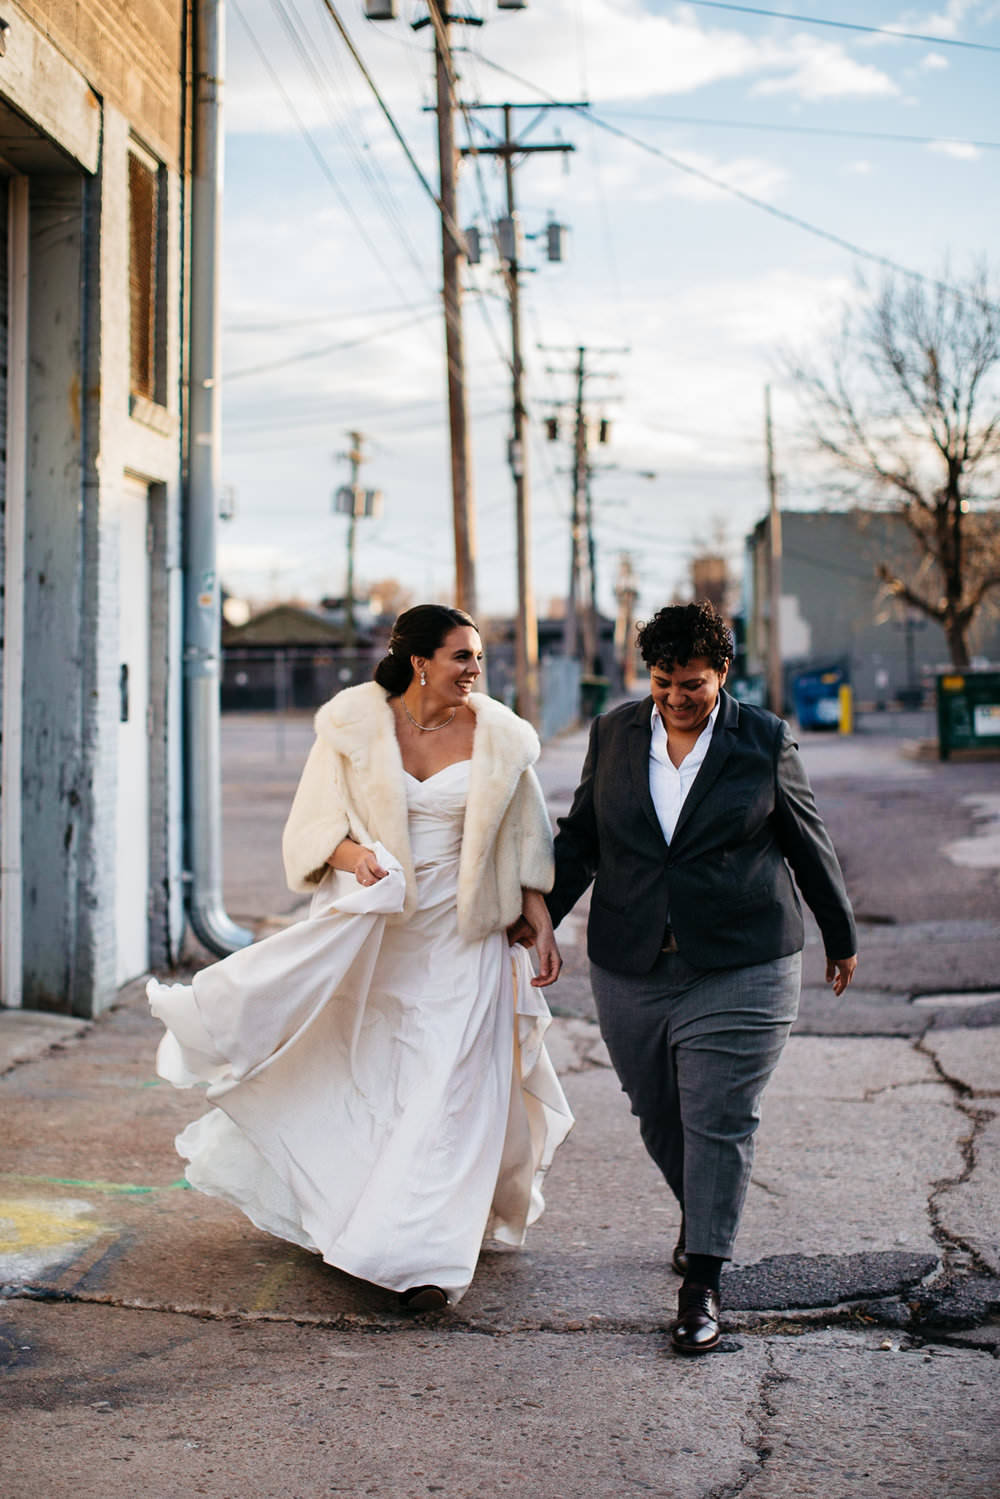 3. Nelia+Daniell-Skylight-Denver-Wedding-7.jpeg